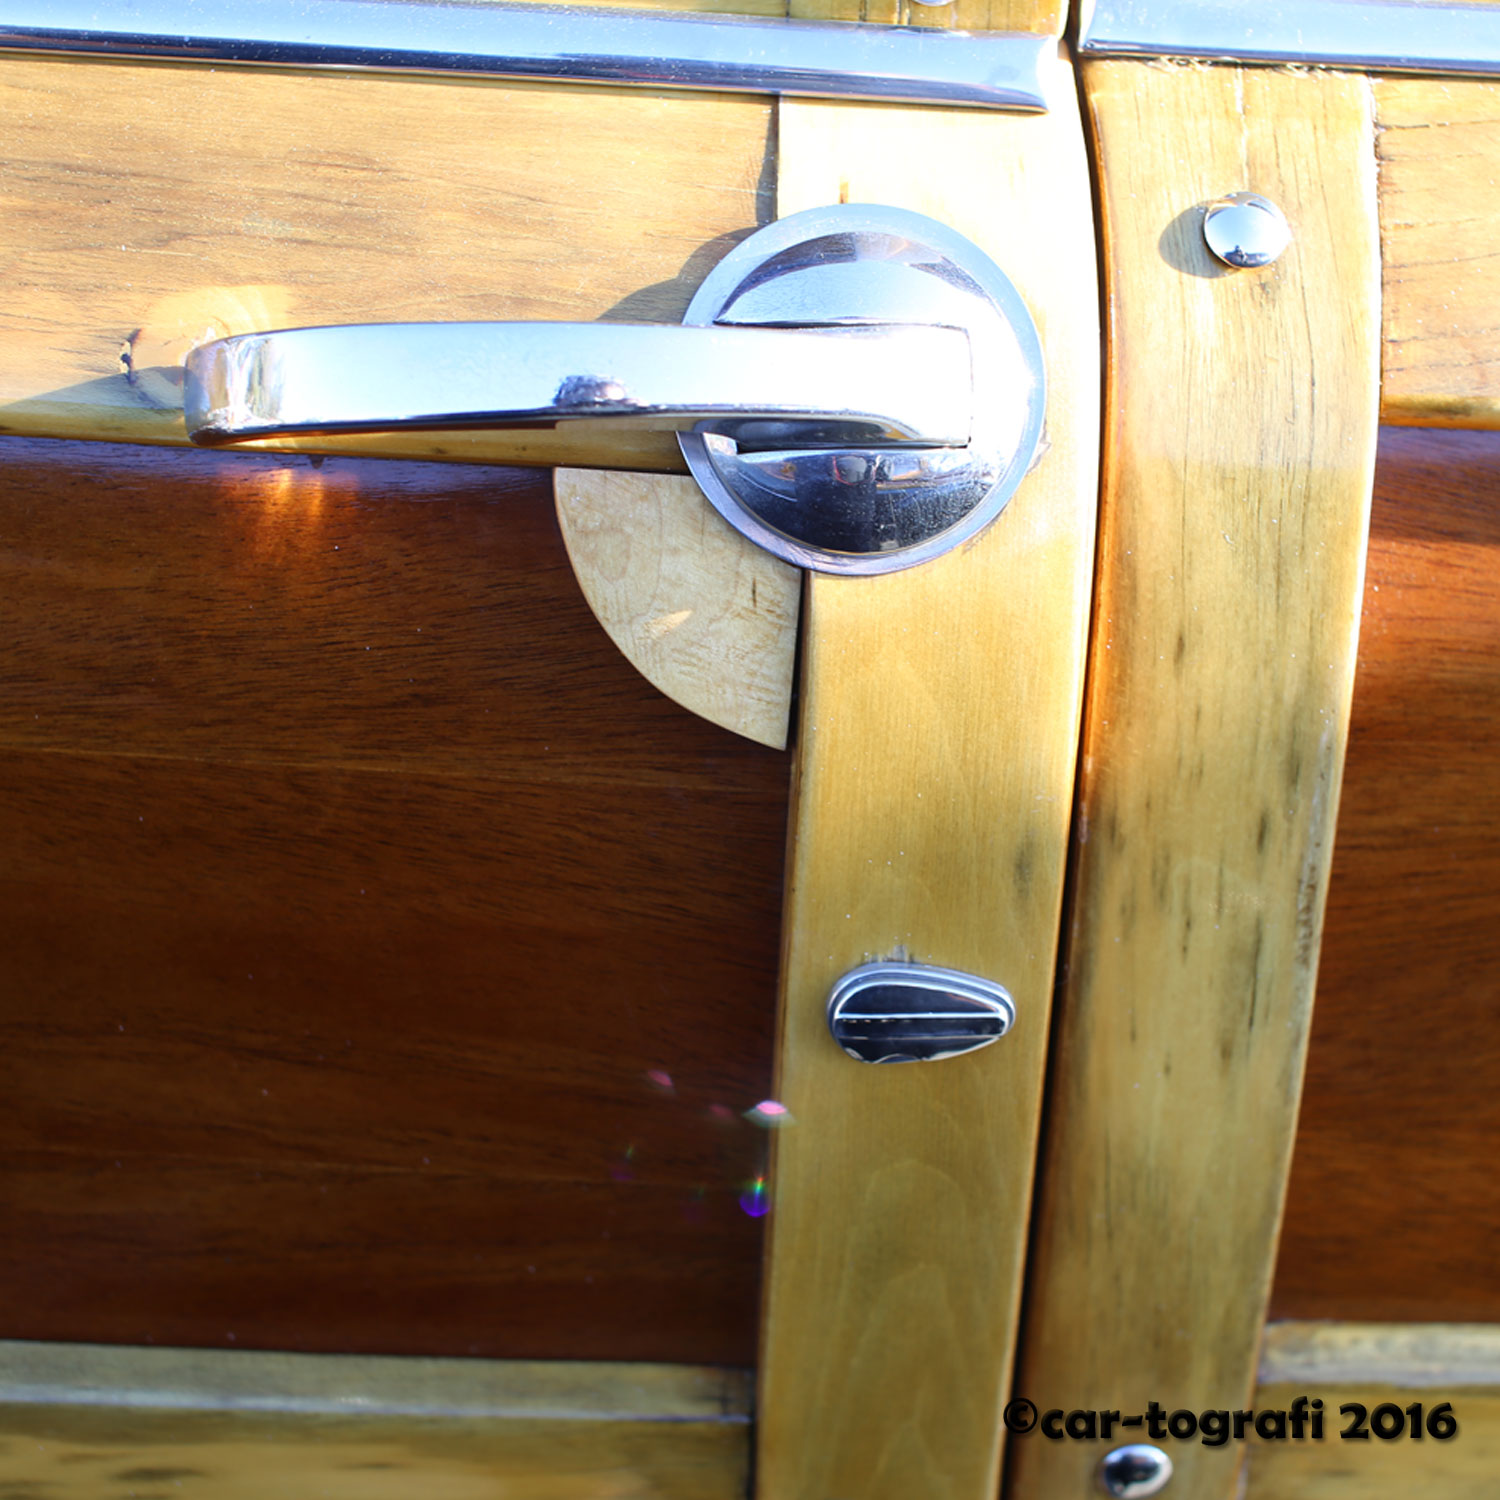 wood-doheny-car-tografi-21.jpg